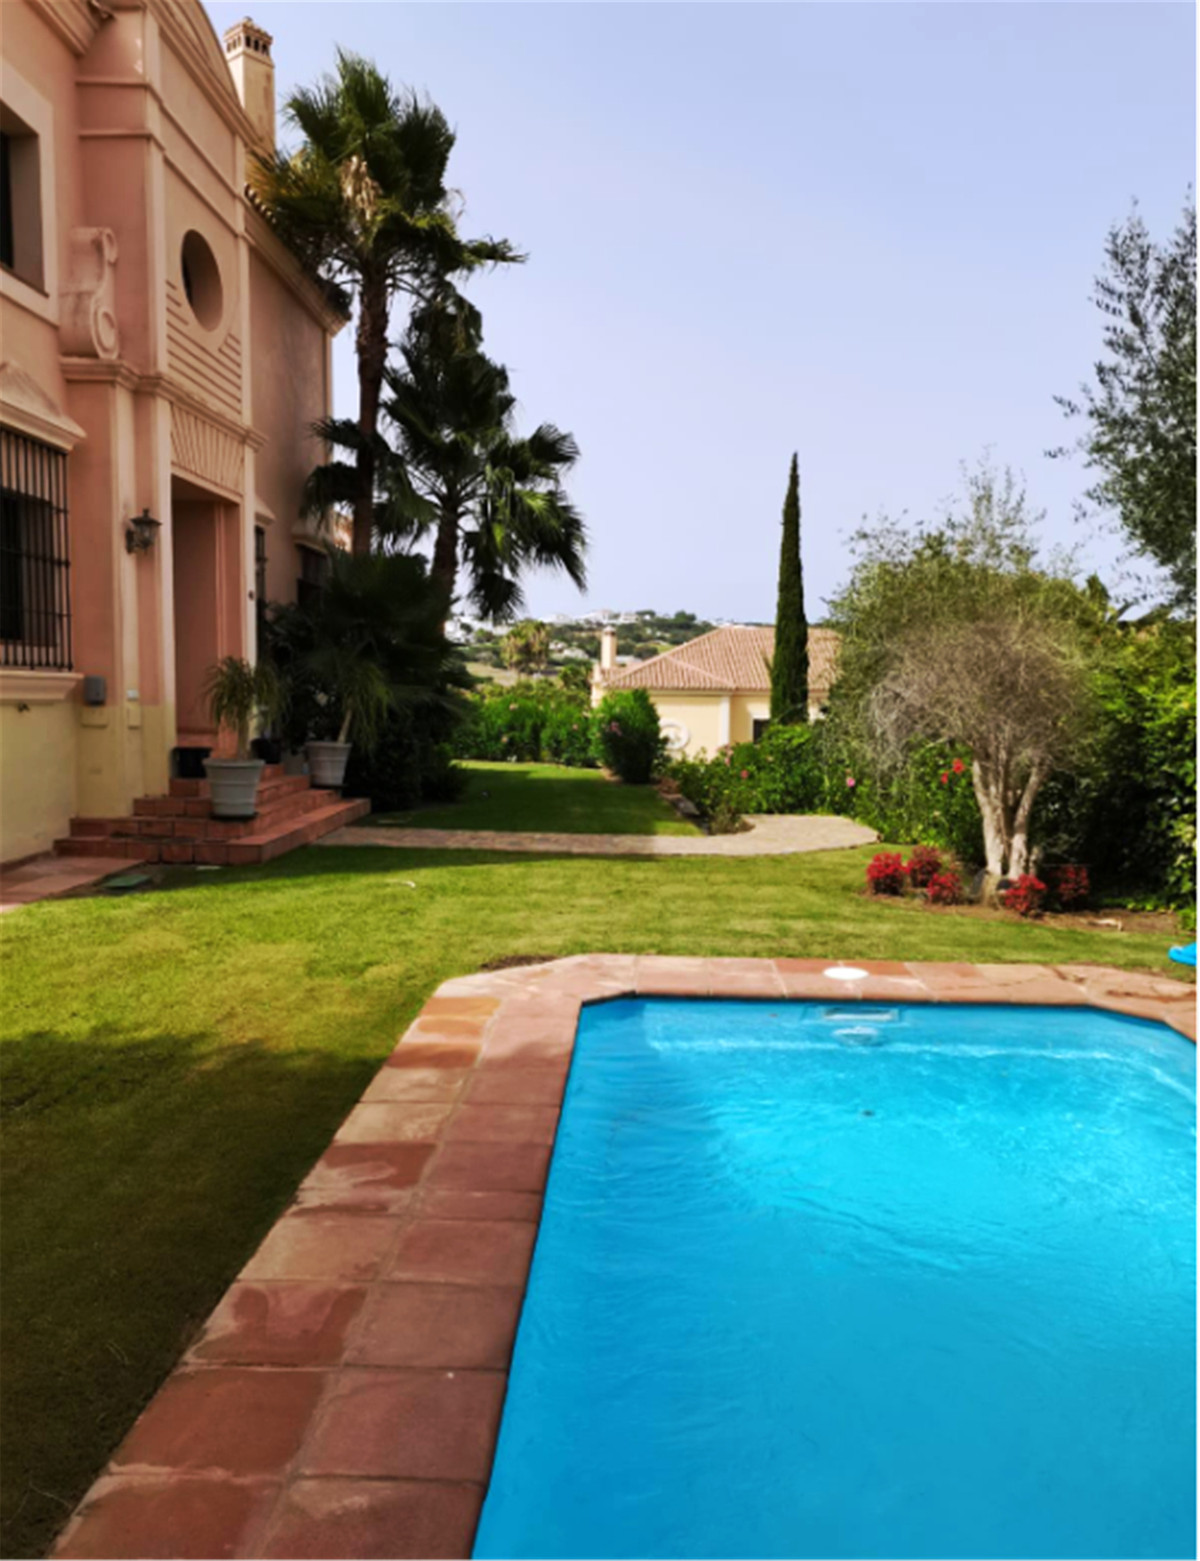 LUXURY 4 BEDROOM Villa ...   Fantastic  beautiful private villa in the area of Almenara in Sotogrand, Spain